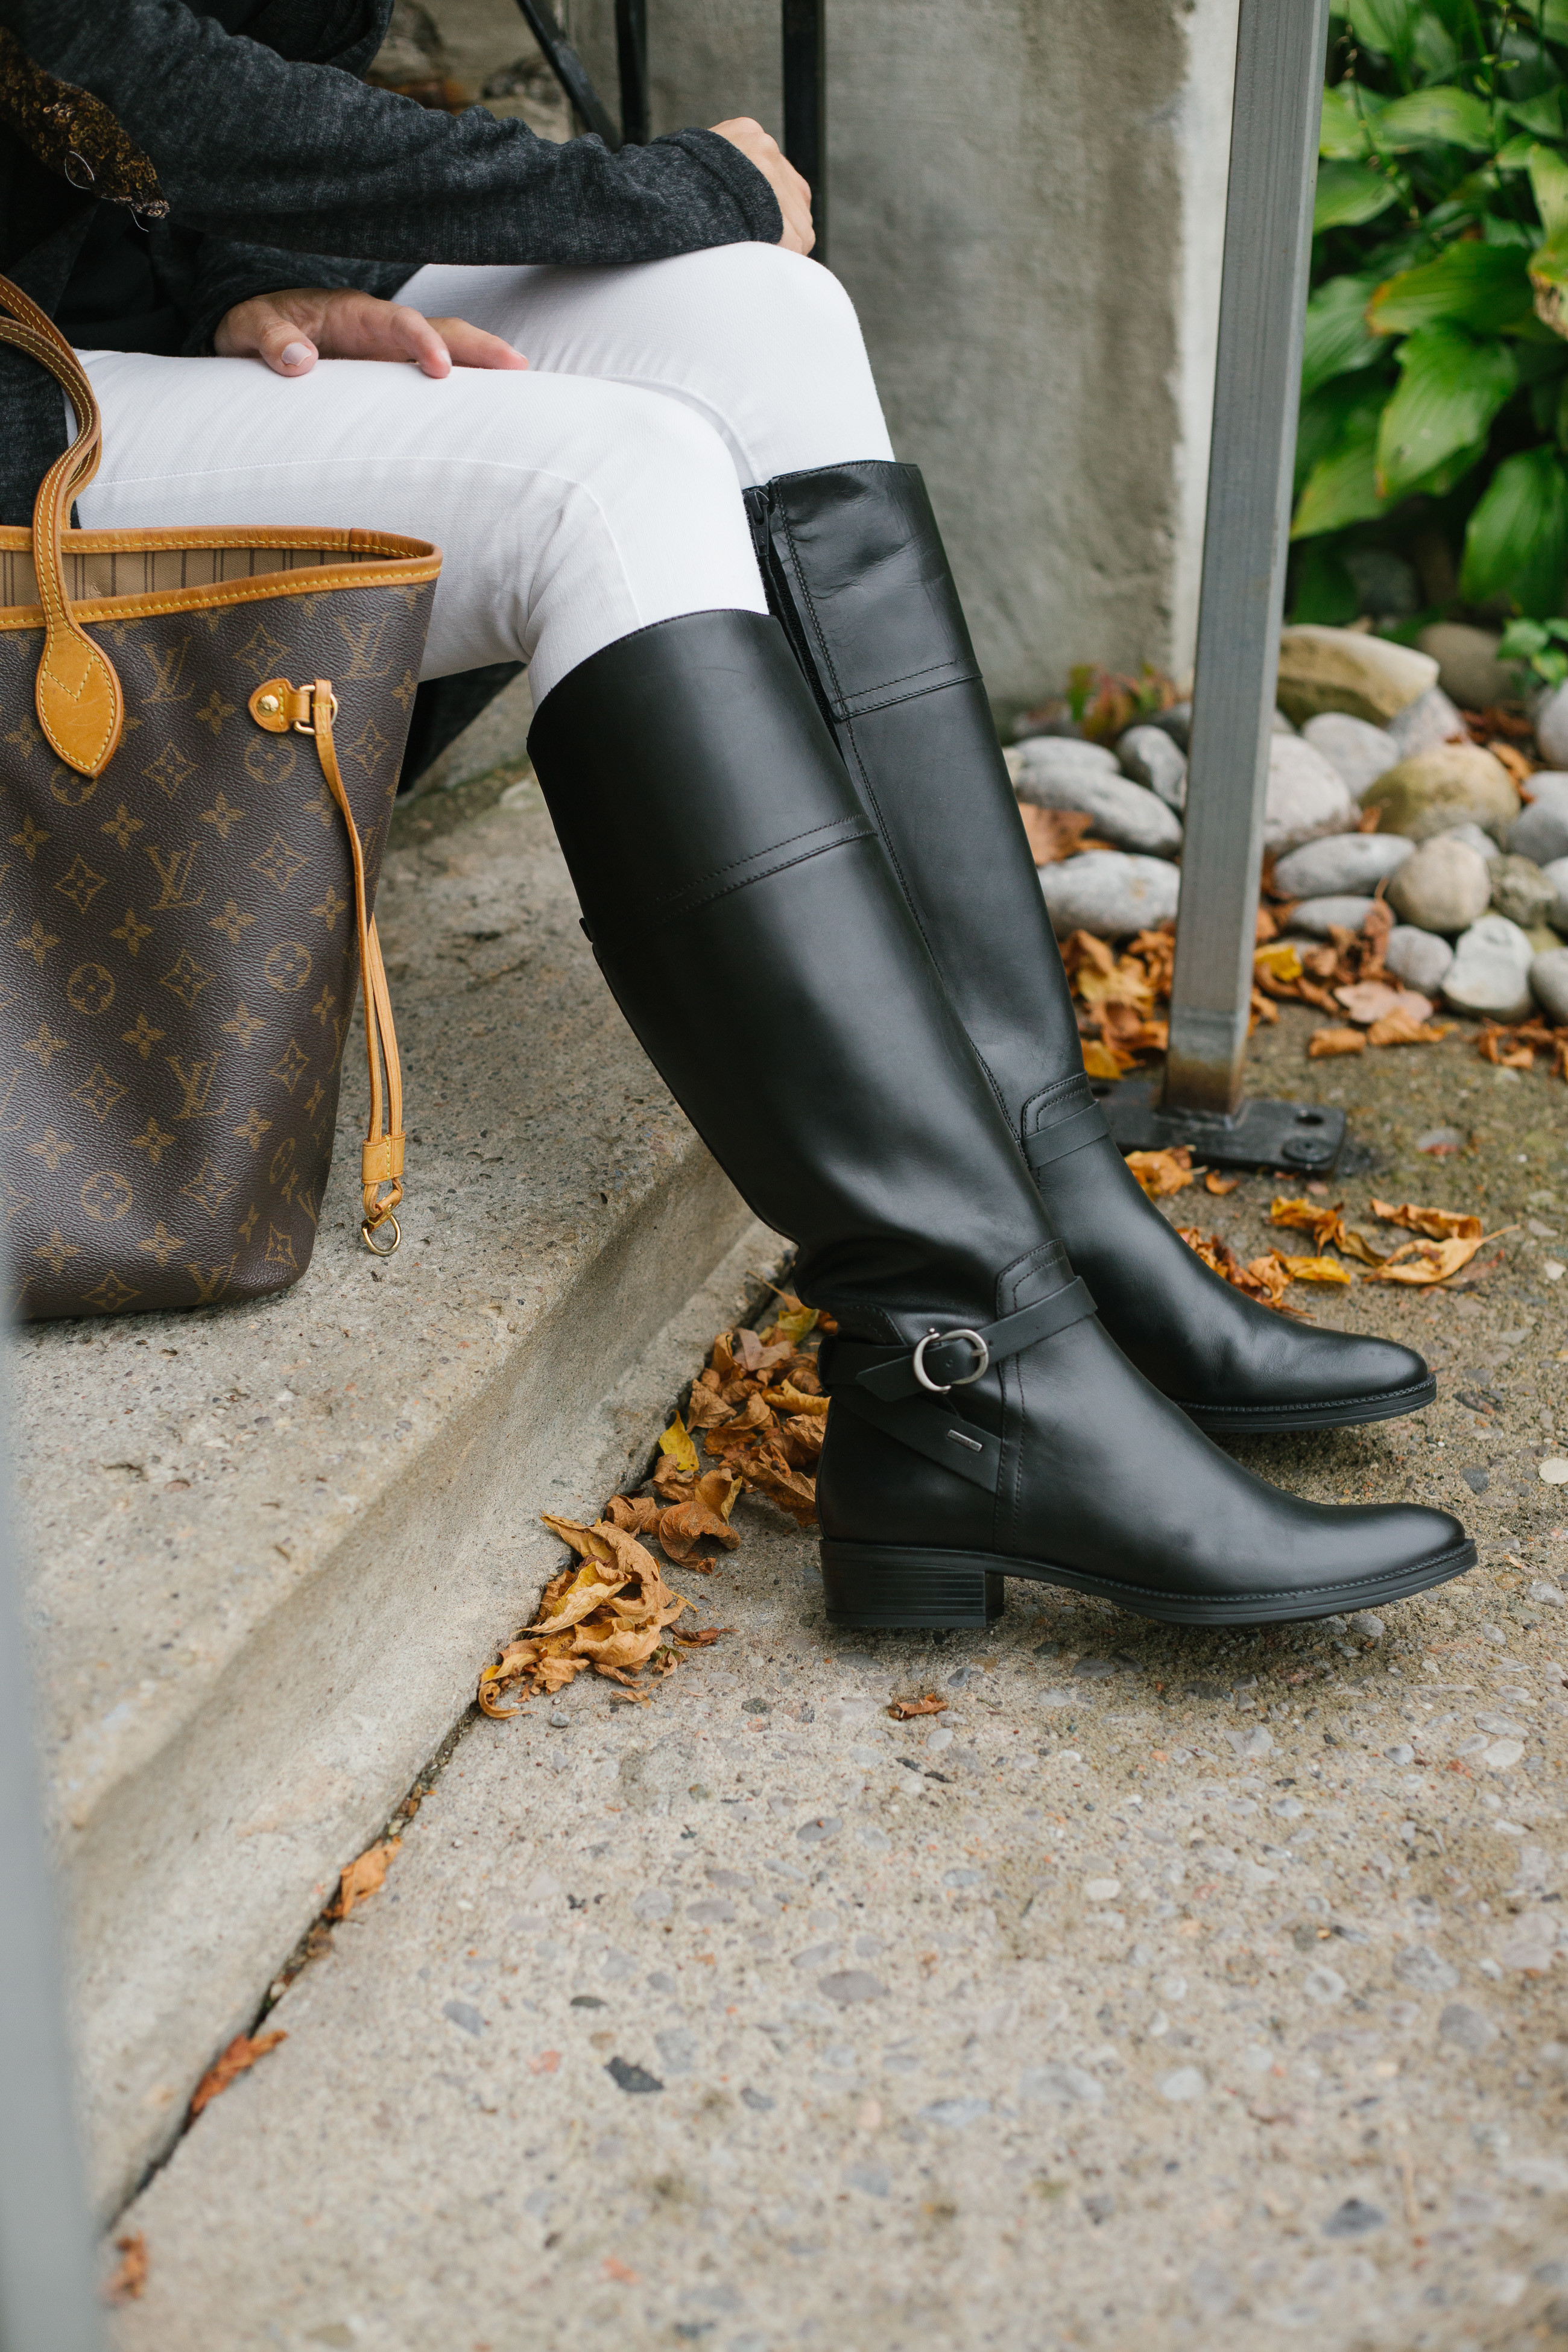 Black Geox riding boots